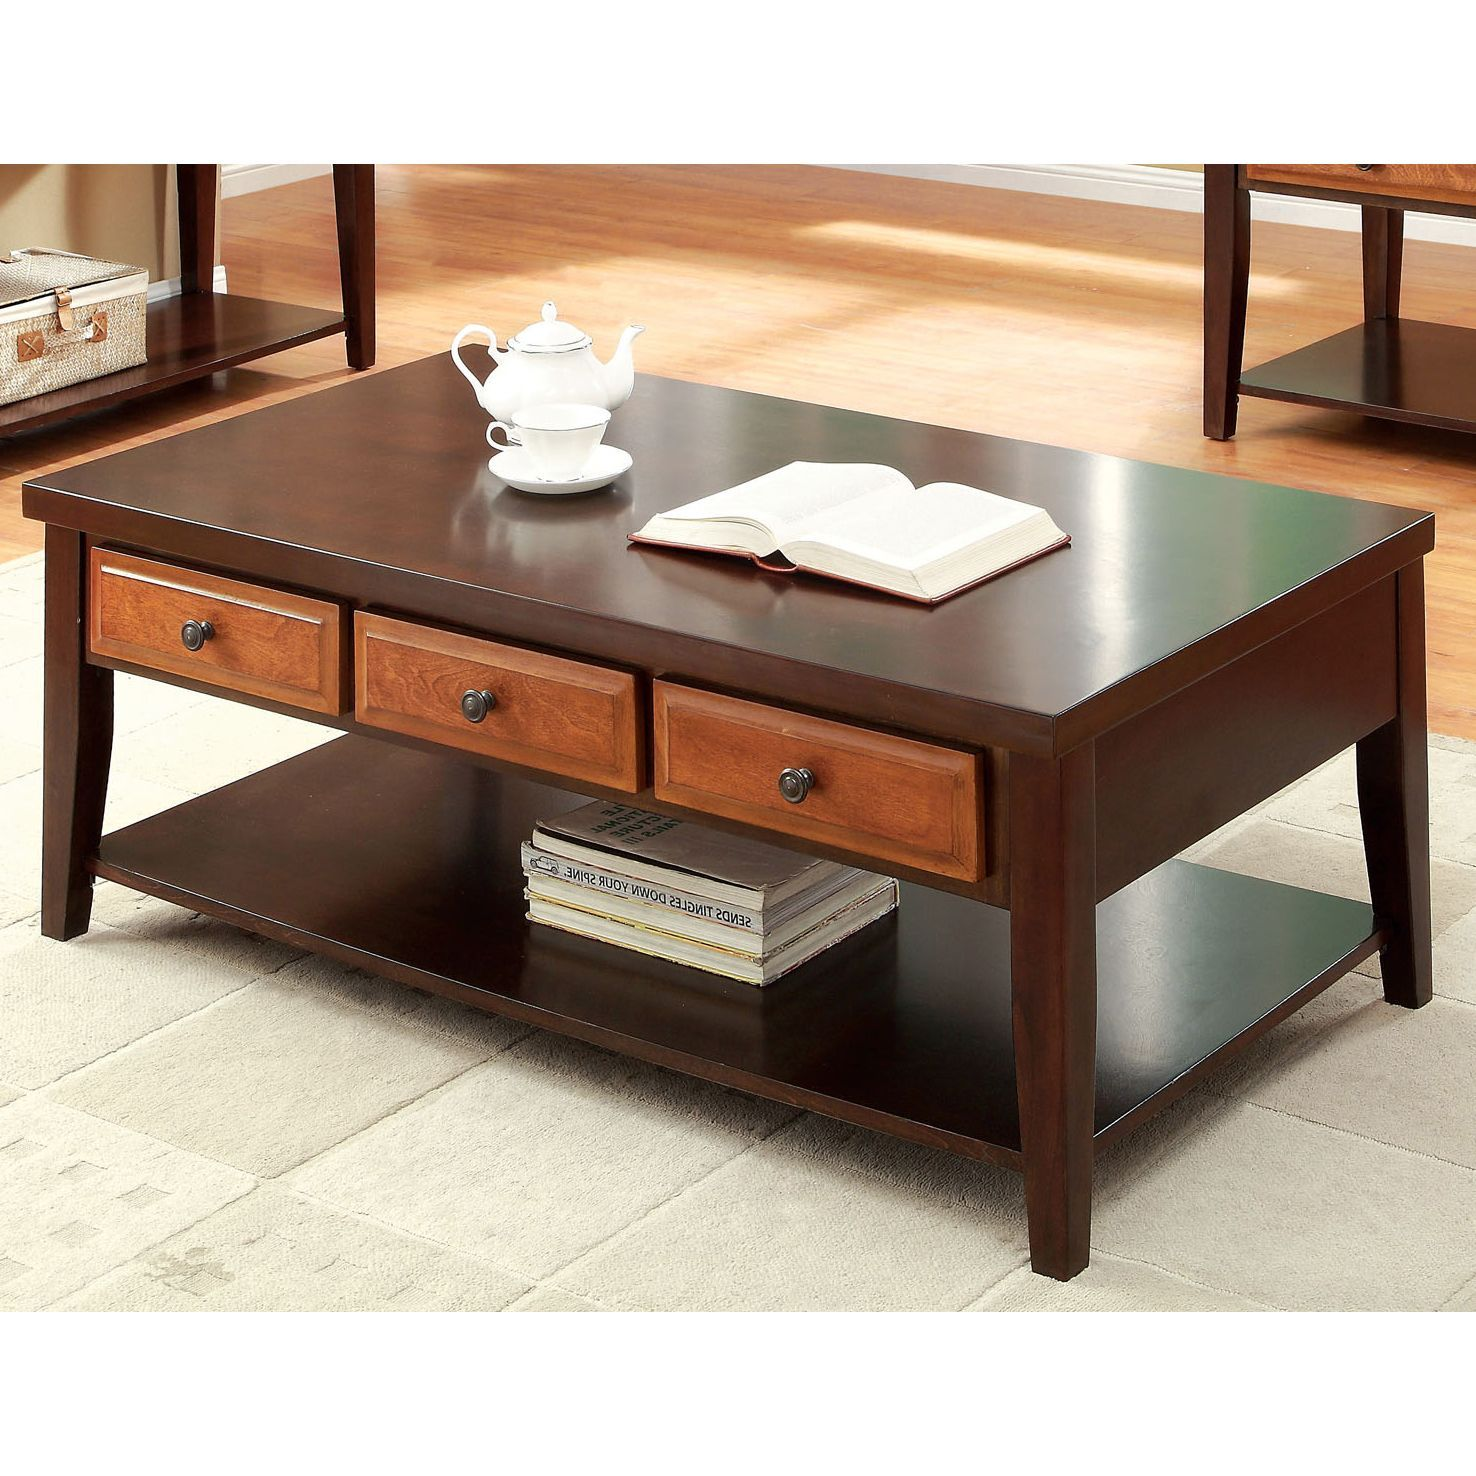 Overstock Com Online Shopping Bedding Furniture Electronics Jewelry Clothing More In 2021 Coffee Table Coffee Table Wood Solid Wood Coffee Table [ 1476 x 1476 Pixel ]